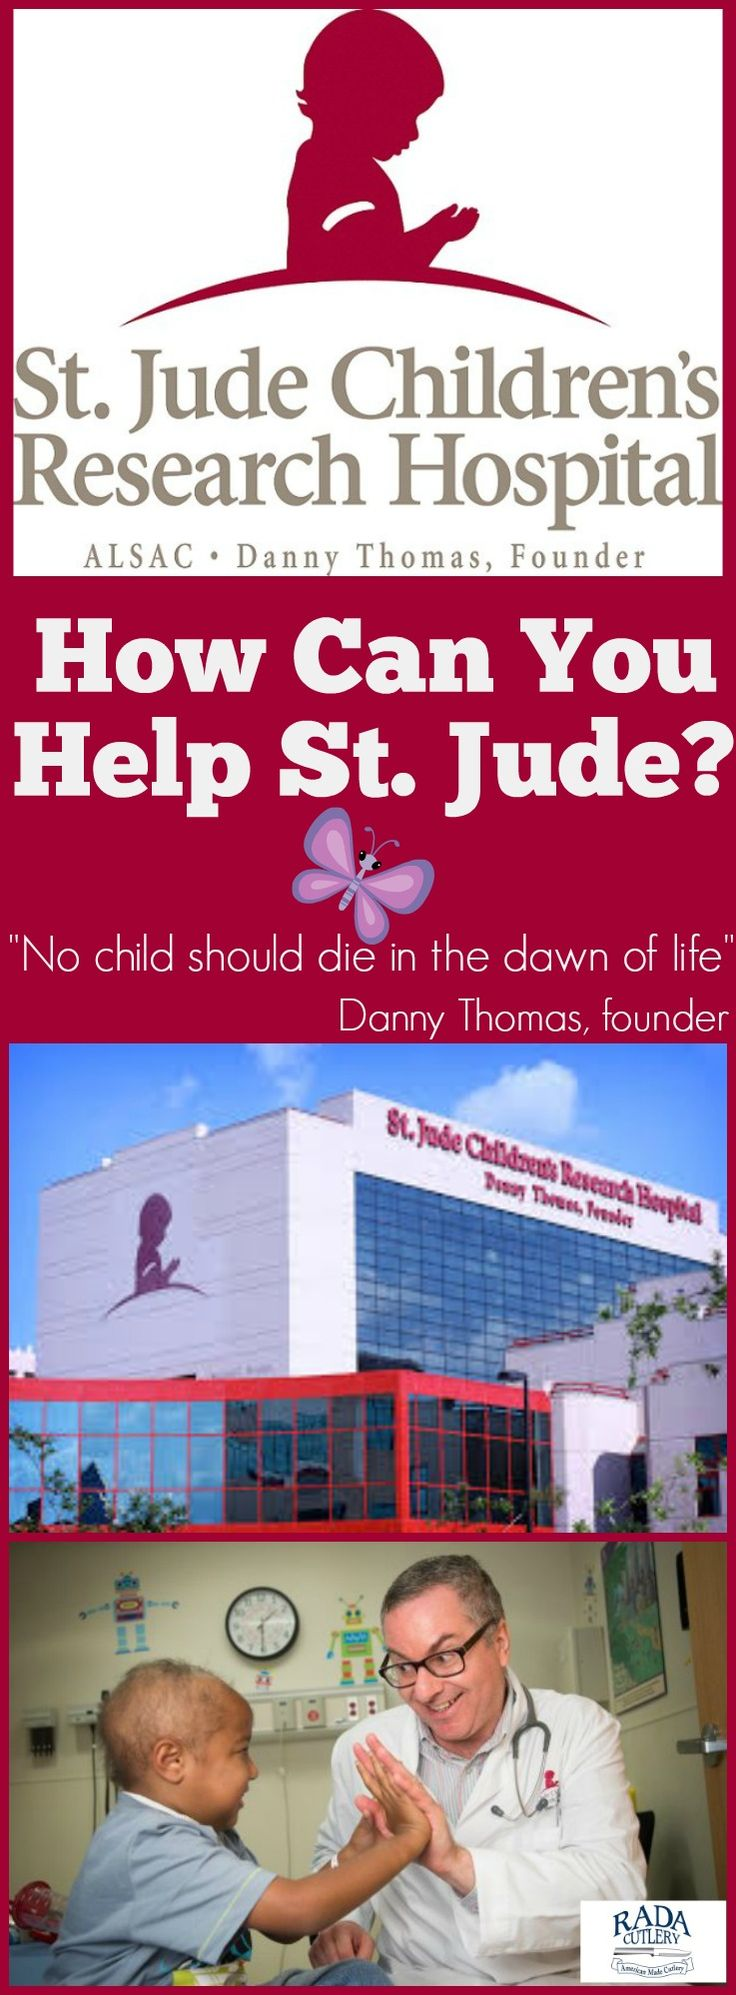 St. Jude relies on the charitable donations of kind people across the world. 75% of St. Jude's is covered by public contributions, meaning that every dollar is important. As of 2012, 81% of every dollar donated to St. Jude went directly to treatment and research. When donating to St. Jude, there's no such thing as a small donation, only an important one!  If you or someone you know is passionate about children's healthcare, a Rada Cutlery fundraiser is a great way to help! #stjude…